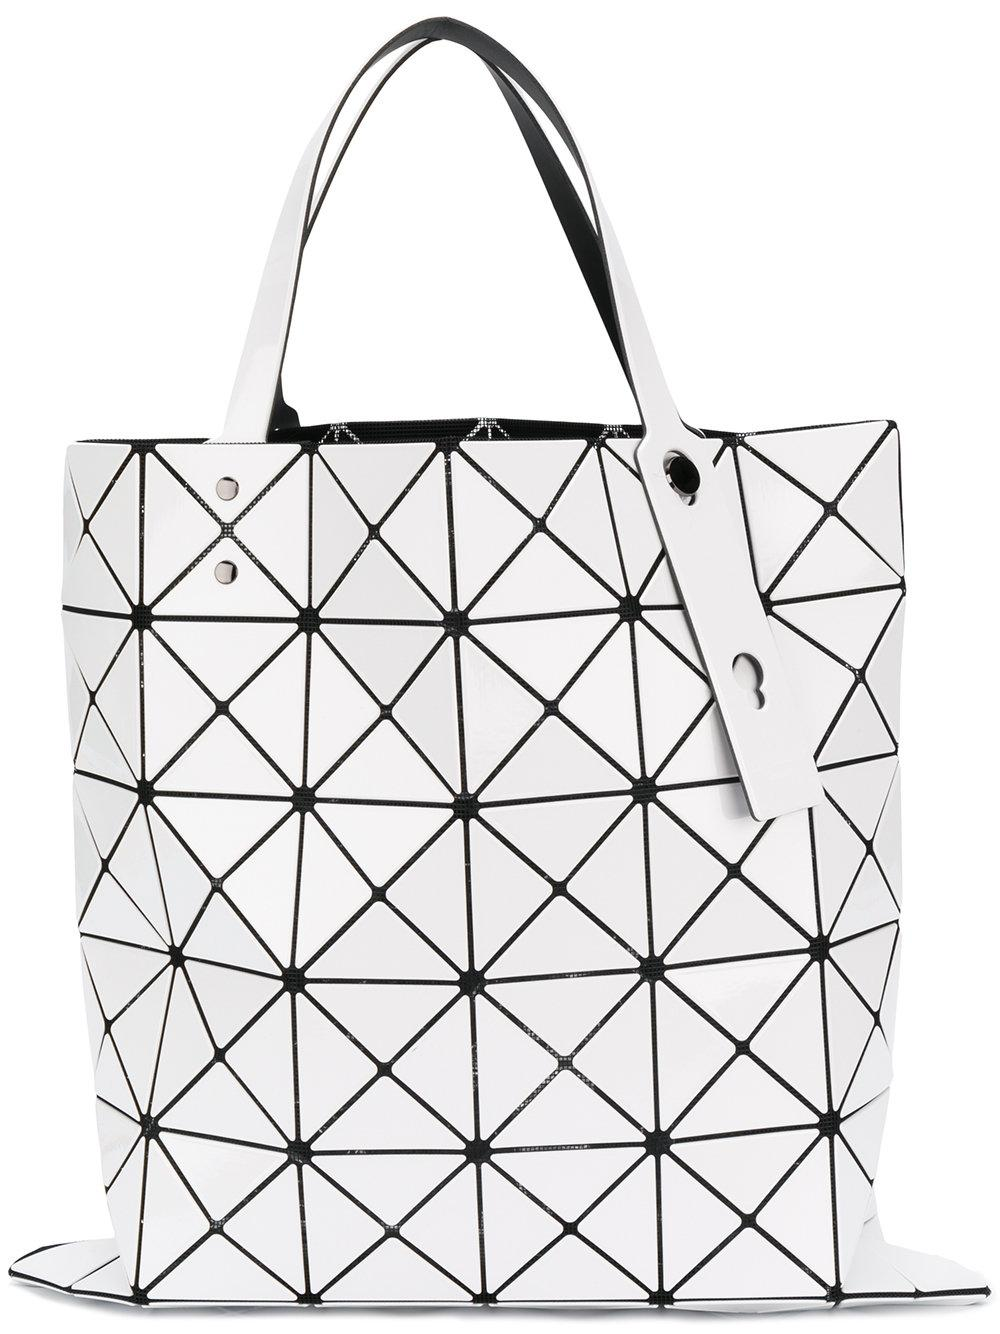 6c0c6cad4edd Bao Bao Issey Miyake Lucent Lightweight Collapsible Tote Bag In White